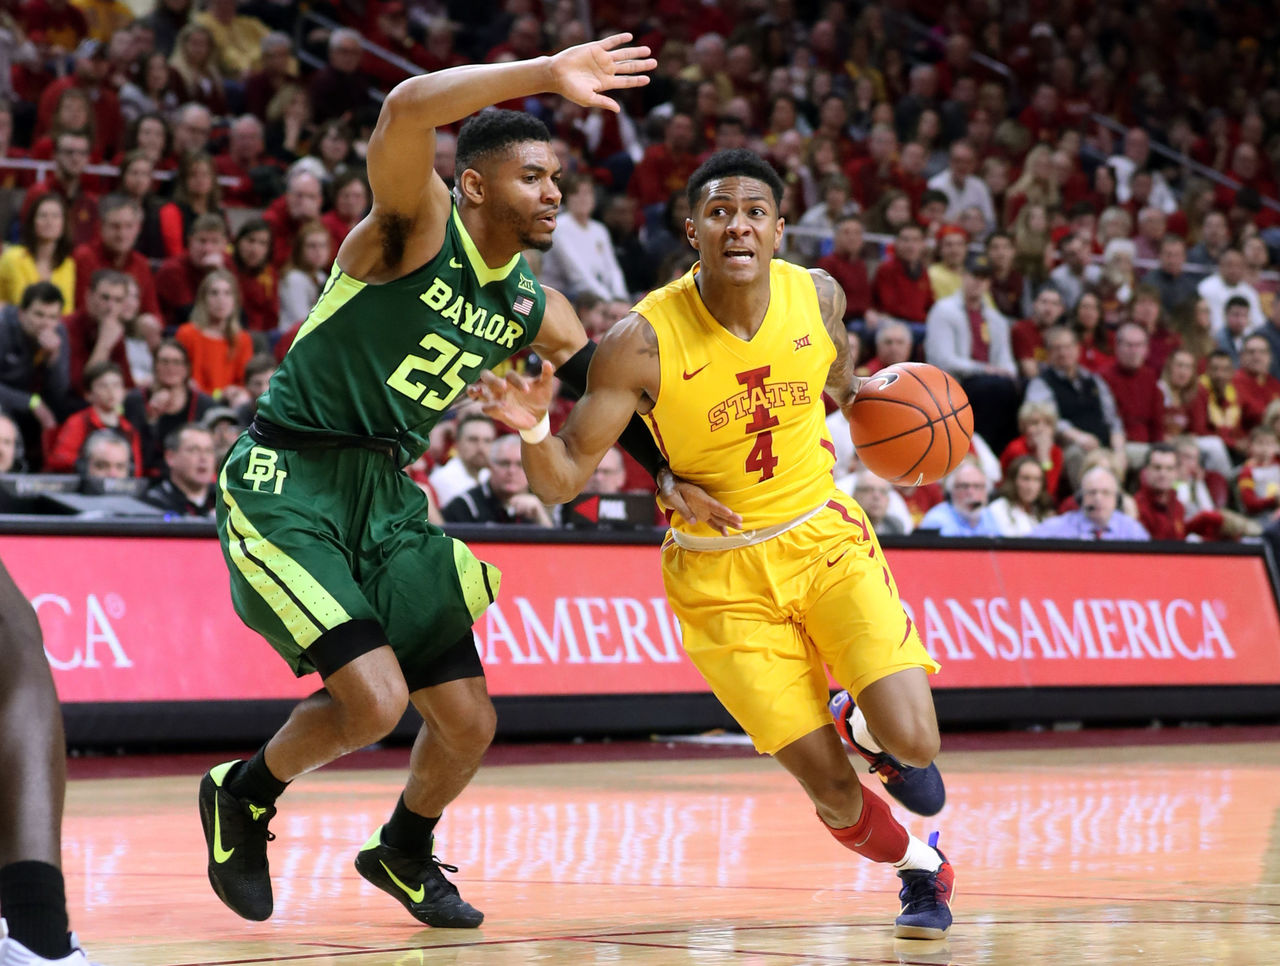 Cropped_2017-02-25t224450z_335483207_nocid_rtrmadp_3_ncaa-basketball-baylor-at-iowa-state